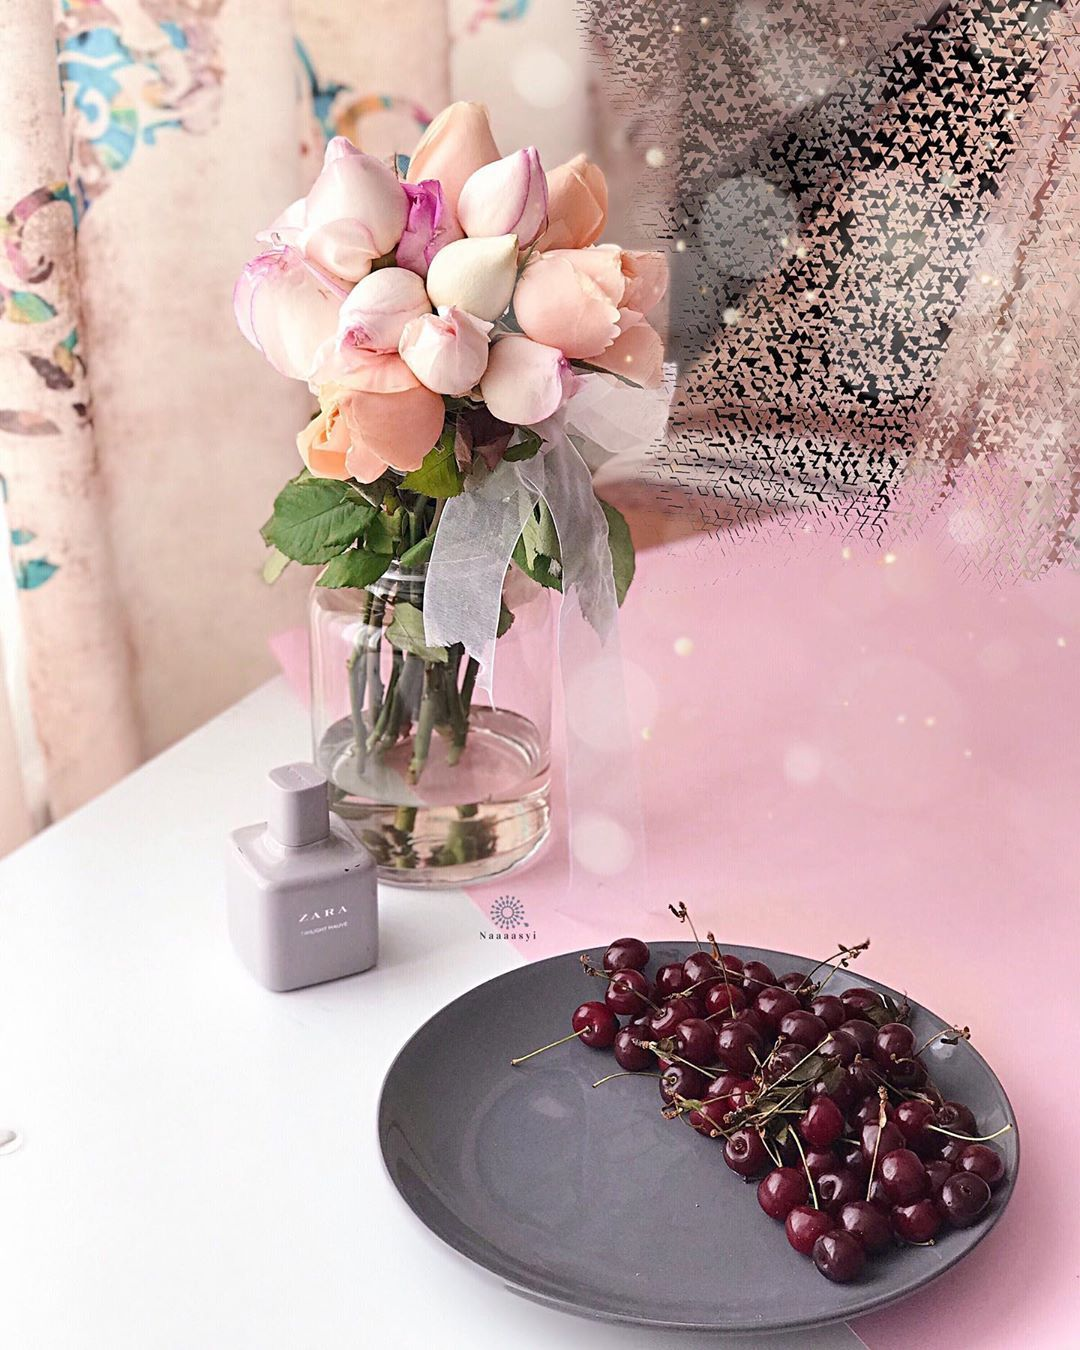 Hope You Started Awesome Week Full Of Energy Full Of Happiness And Health از گل ها زیباتر نیست عطر خوبشون گلبرگ های Table Decorations Decor Home Decor